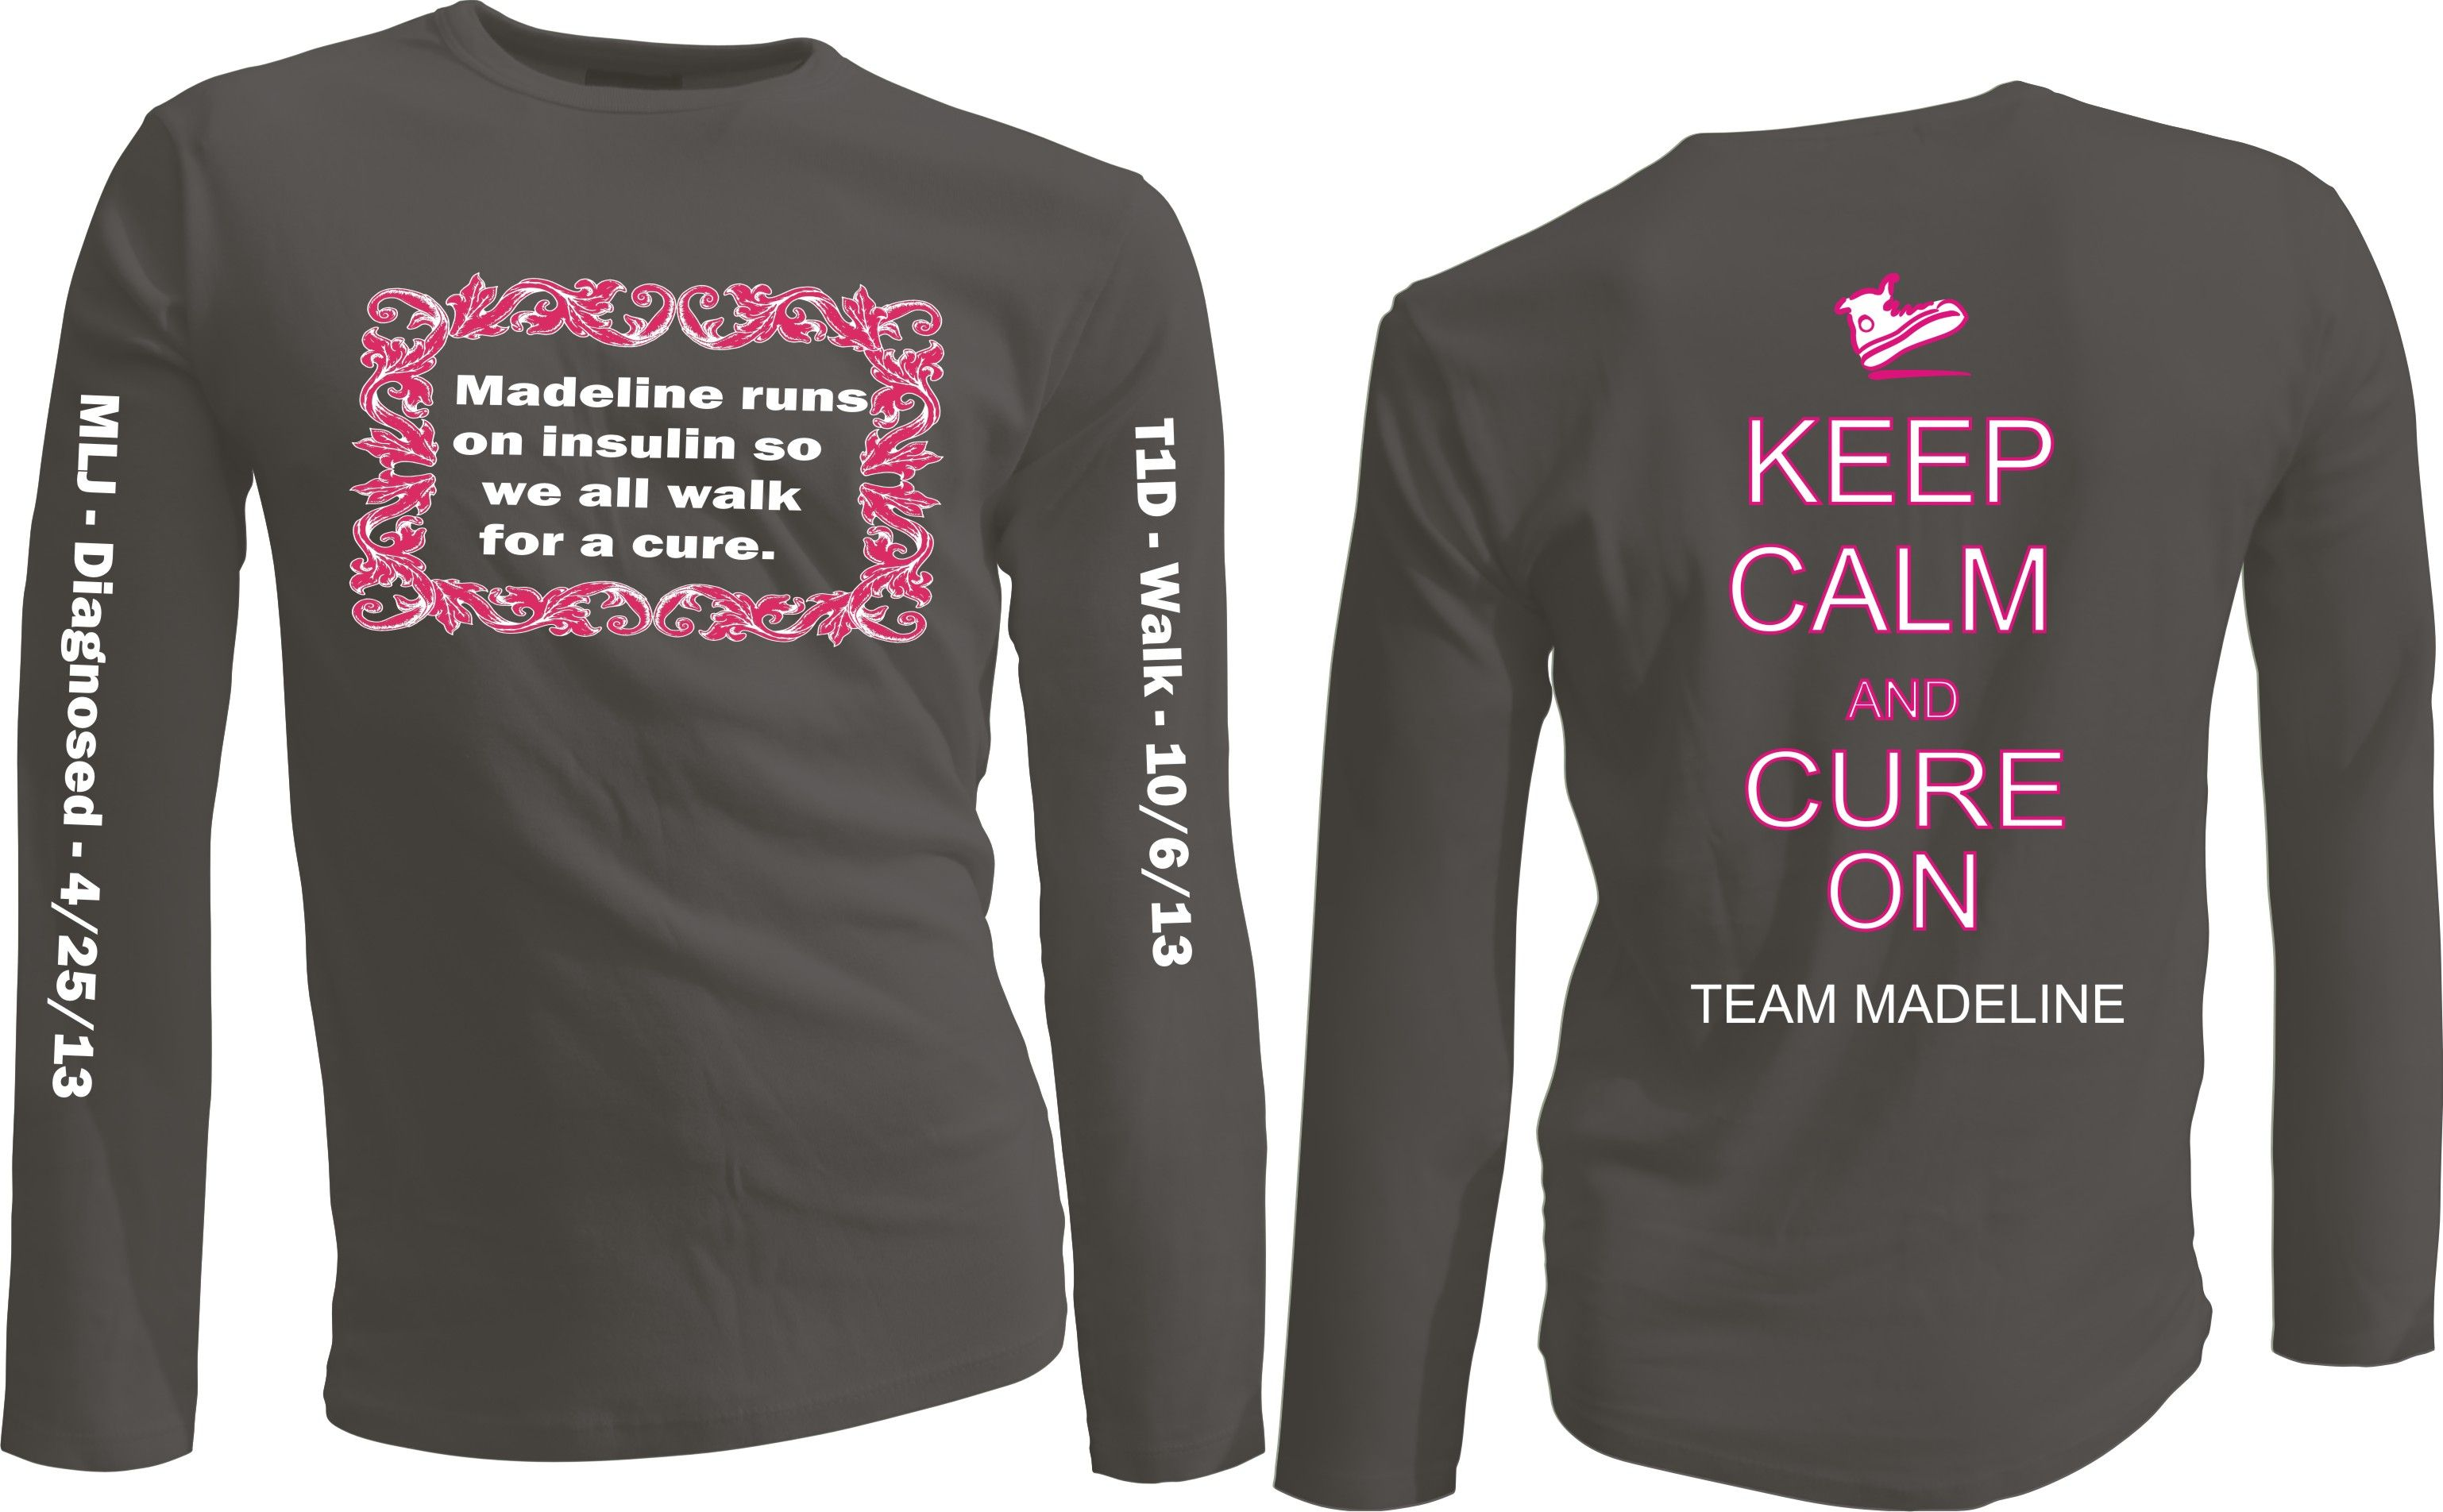 Custom team t shirts ideas for shirts raise for jdrf for Jdrf one walk t shirts